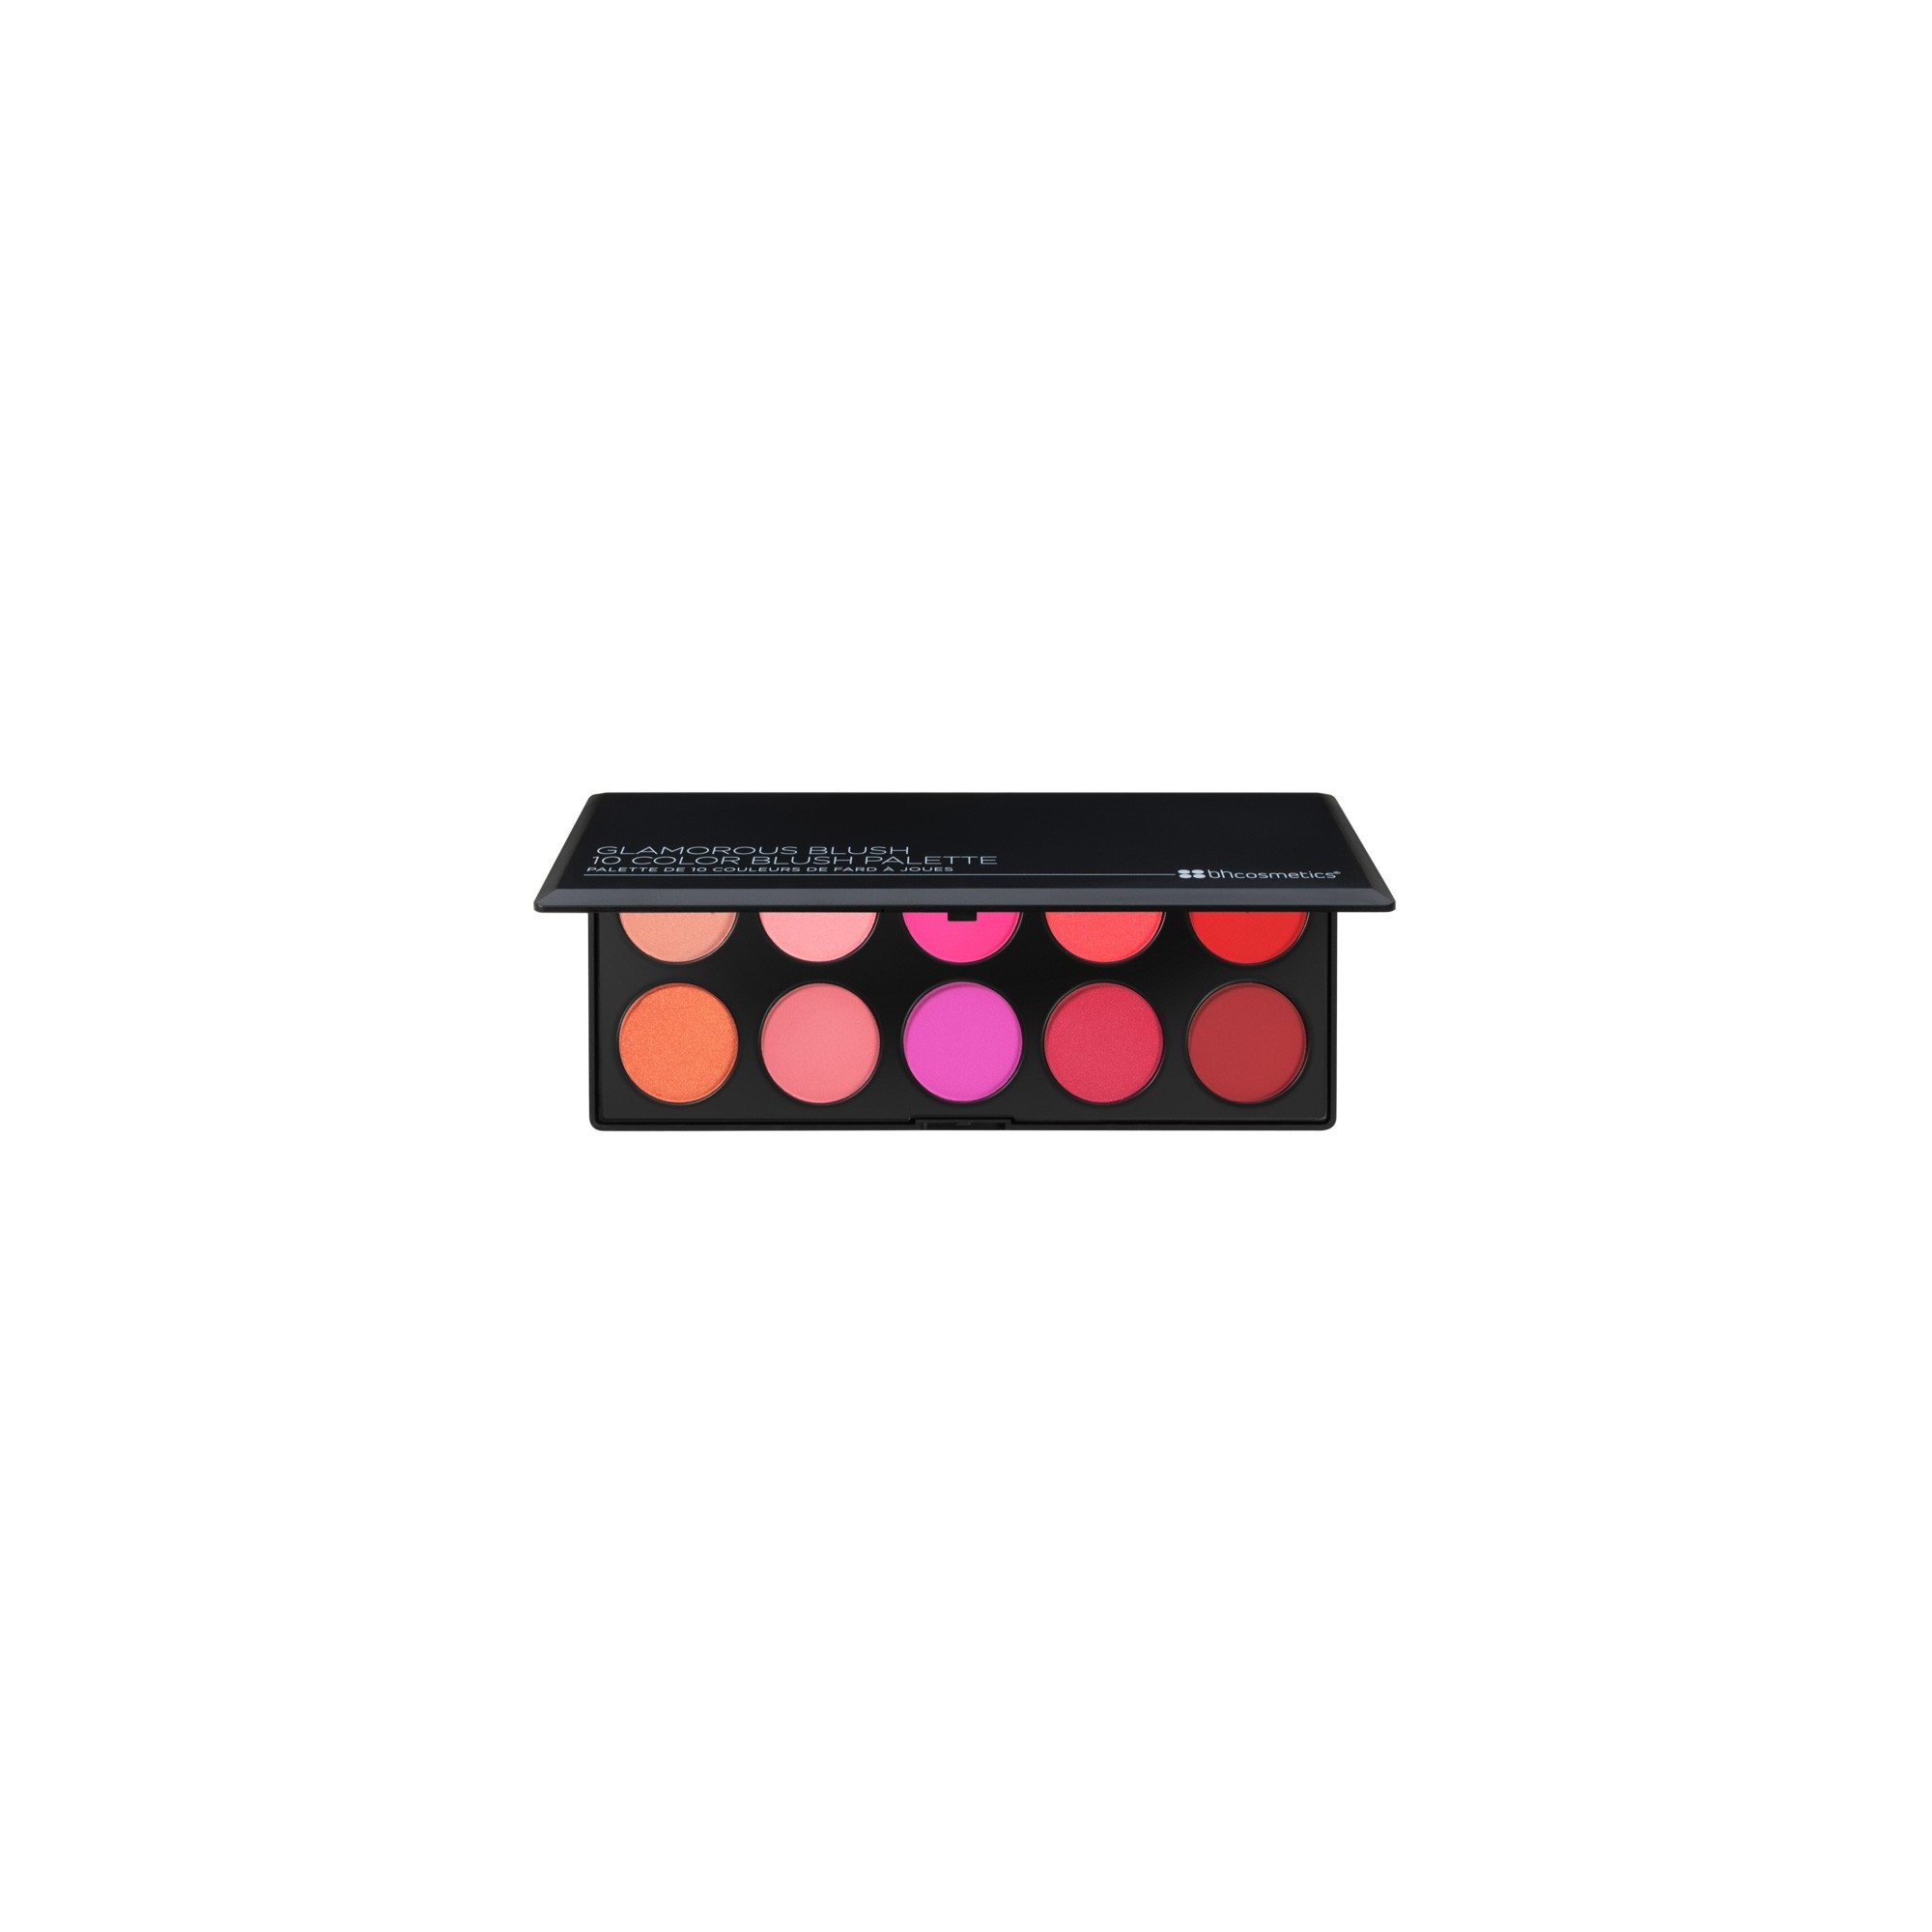 BH Cosmetics Glamorous Blush 10 Color Blush Palette